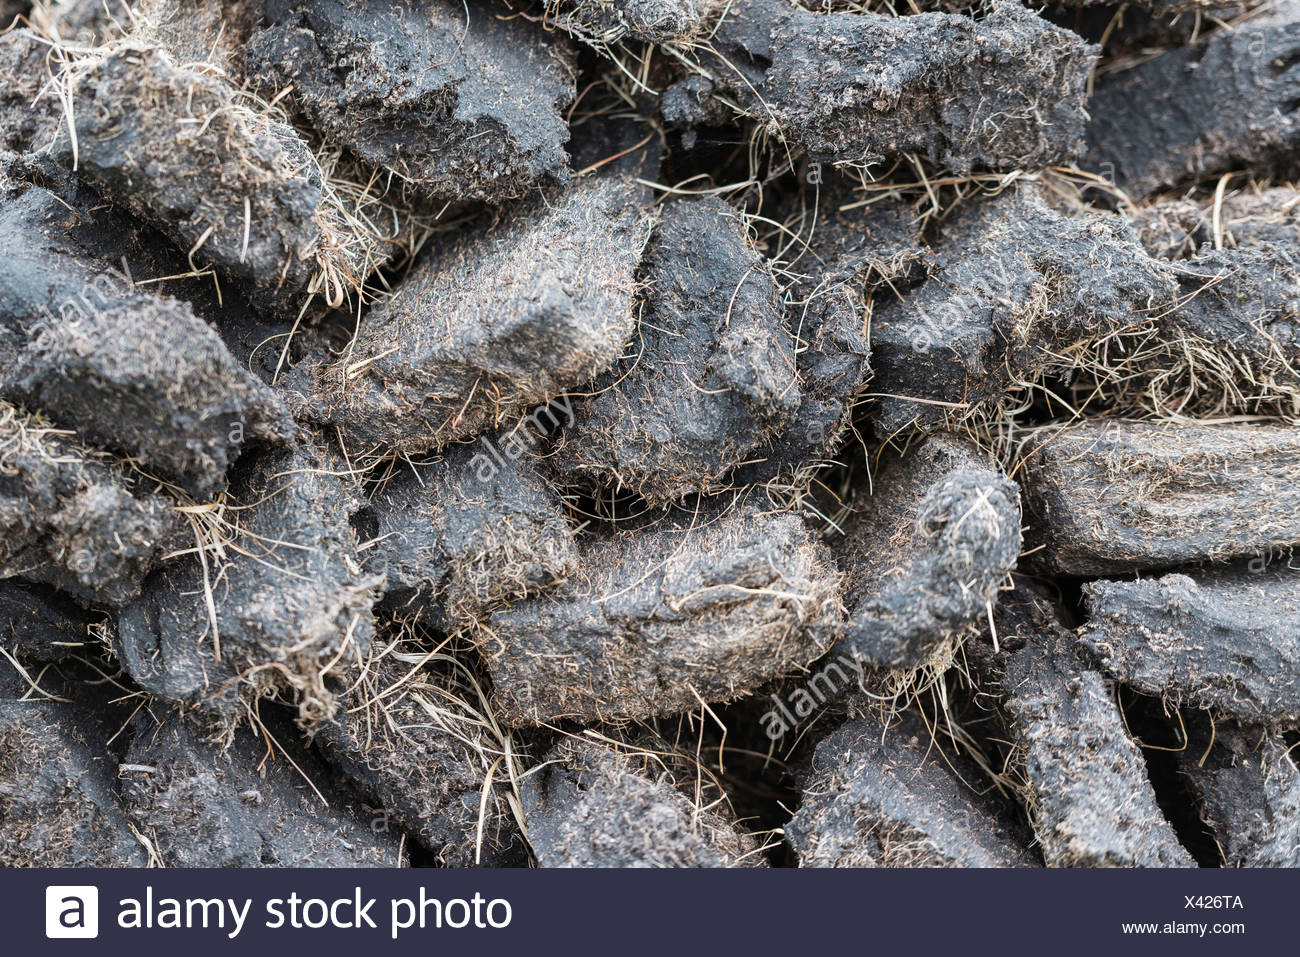 Stack of extracted peat from the Scottish Highland moors, Durness, Schottisches Hochland, Scotland, United Kingdom - Stock Image